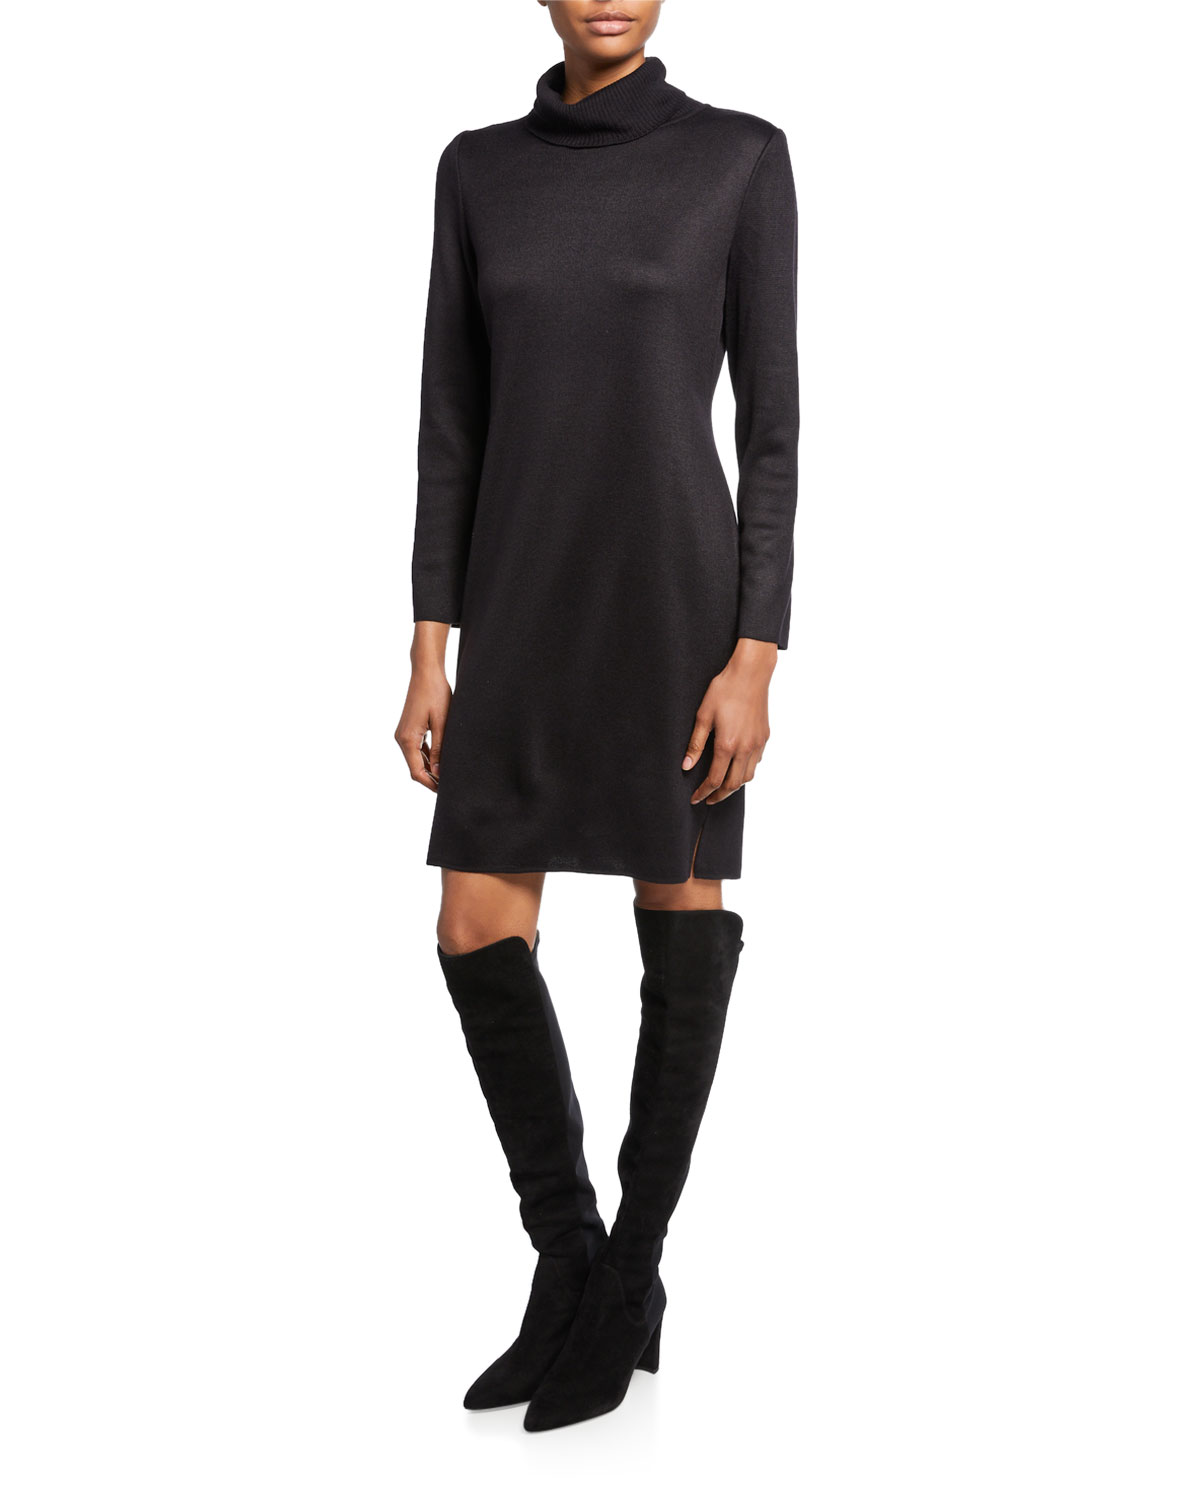 Misook Petite Long-Sleeve Turtleneck Dress